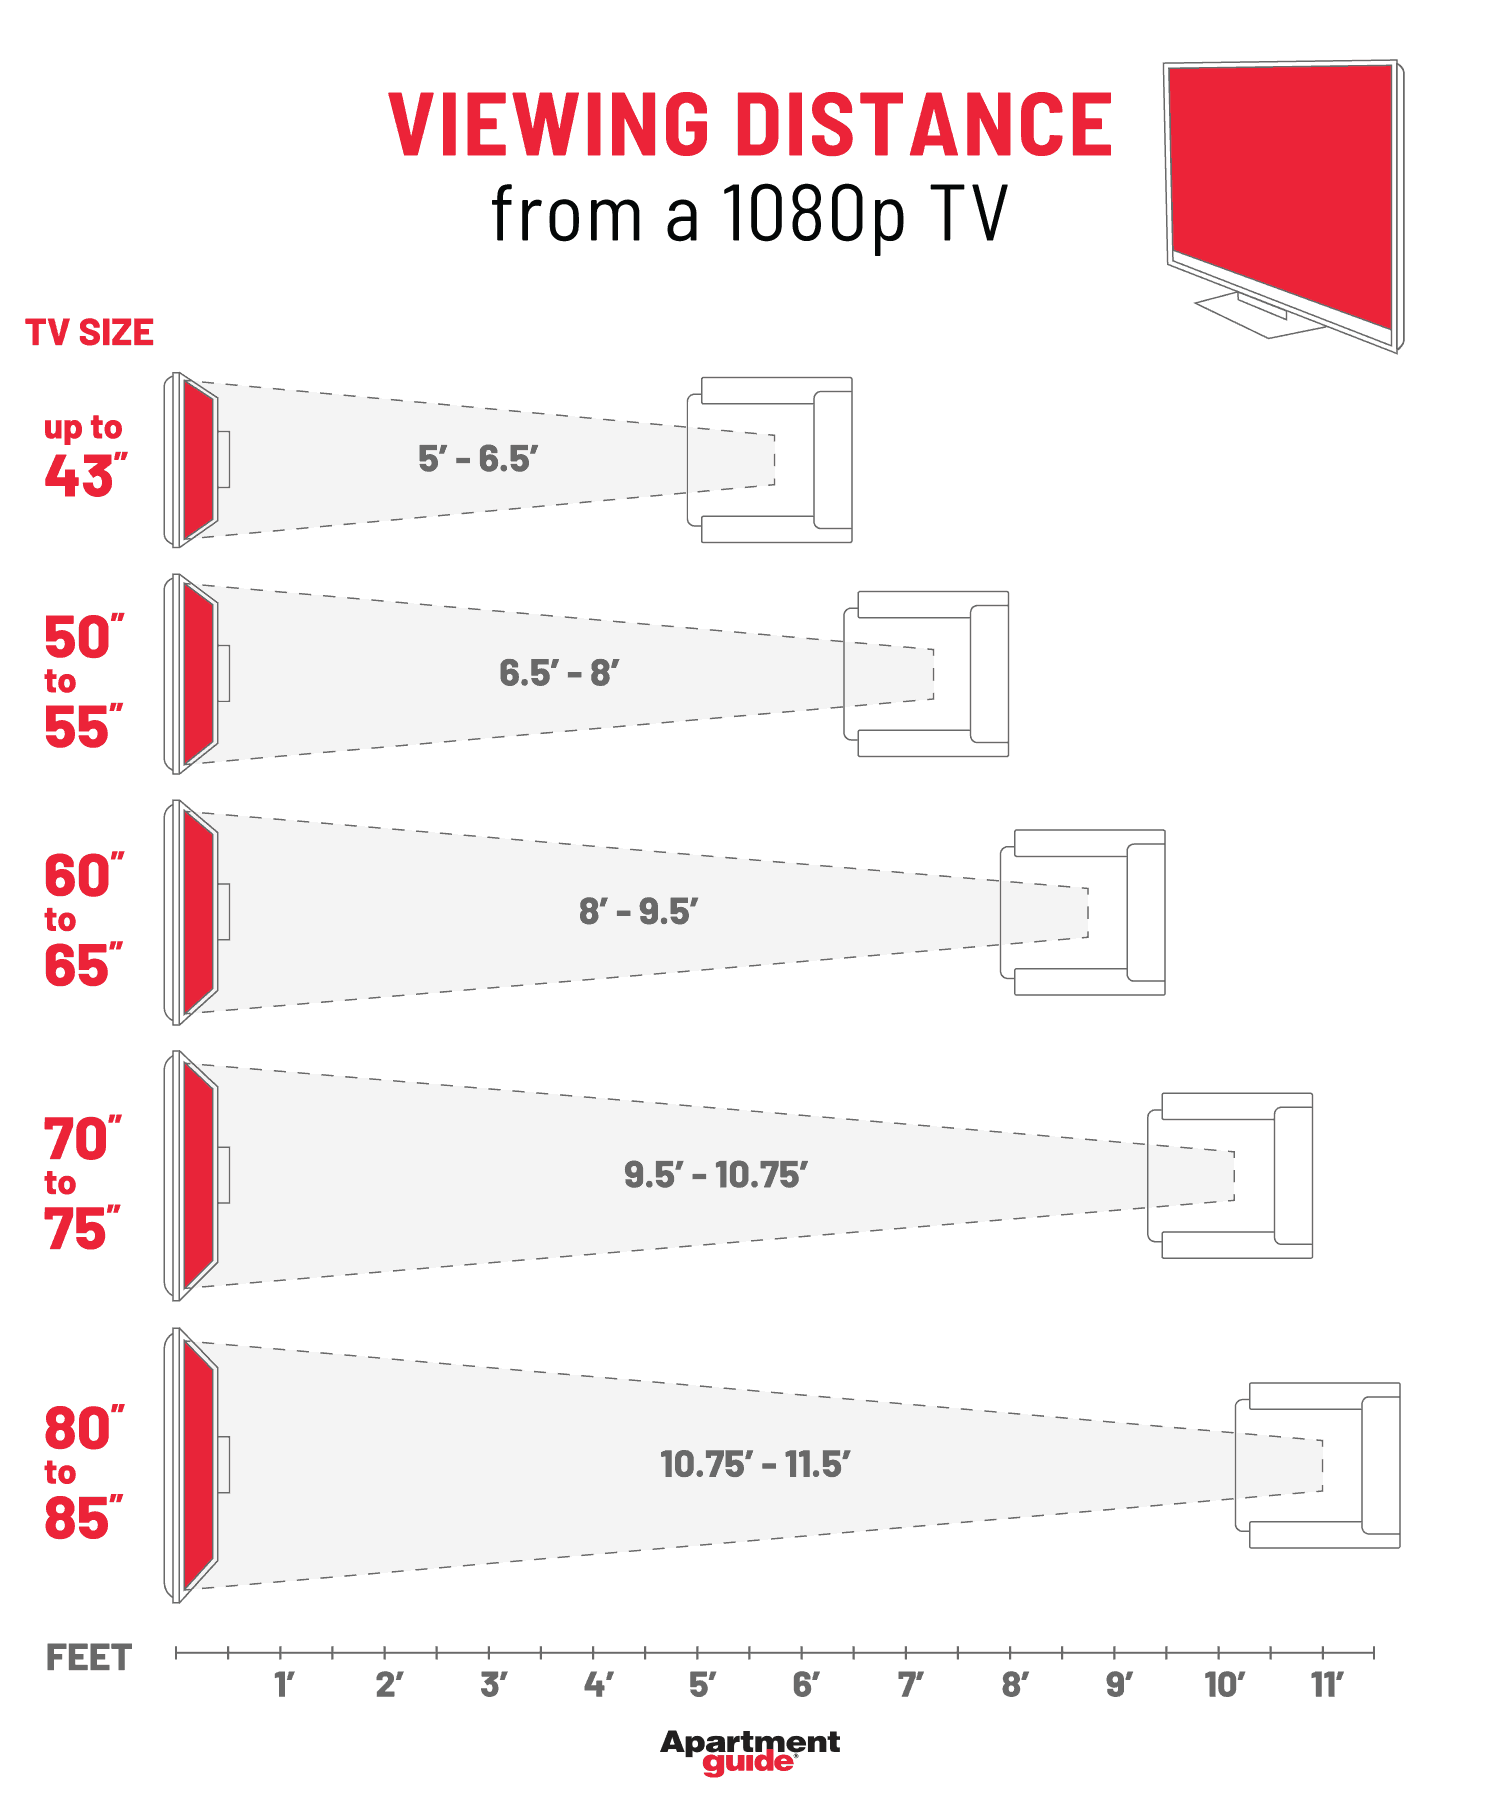 Chart that shows viewing distance from a 1080p TV